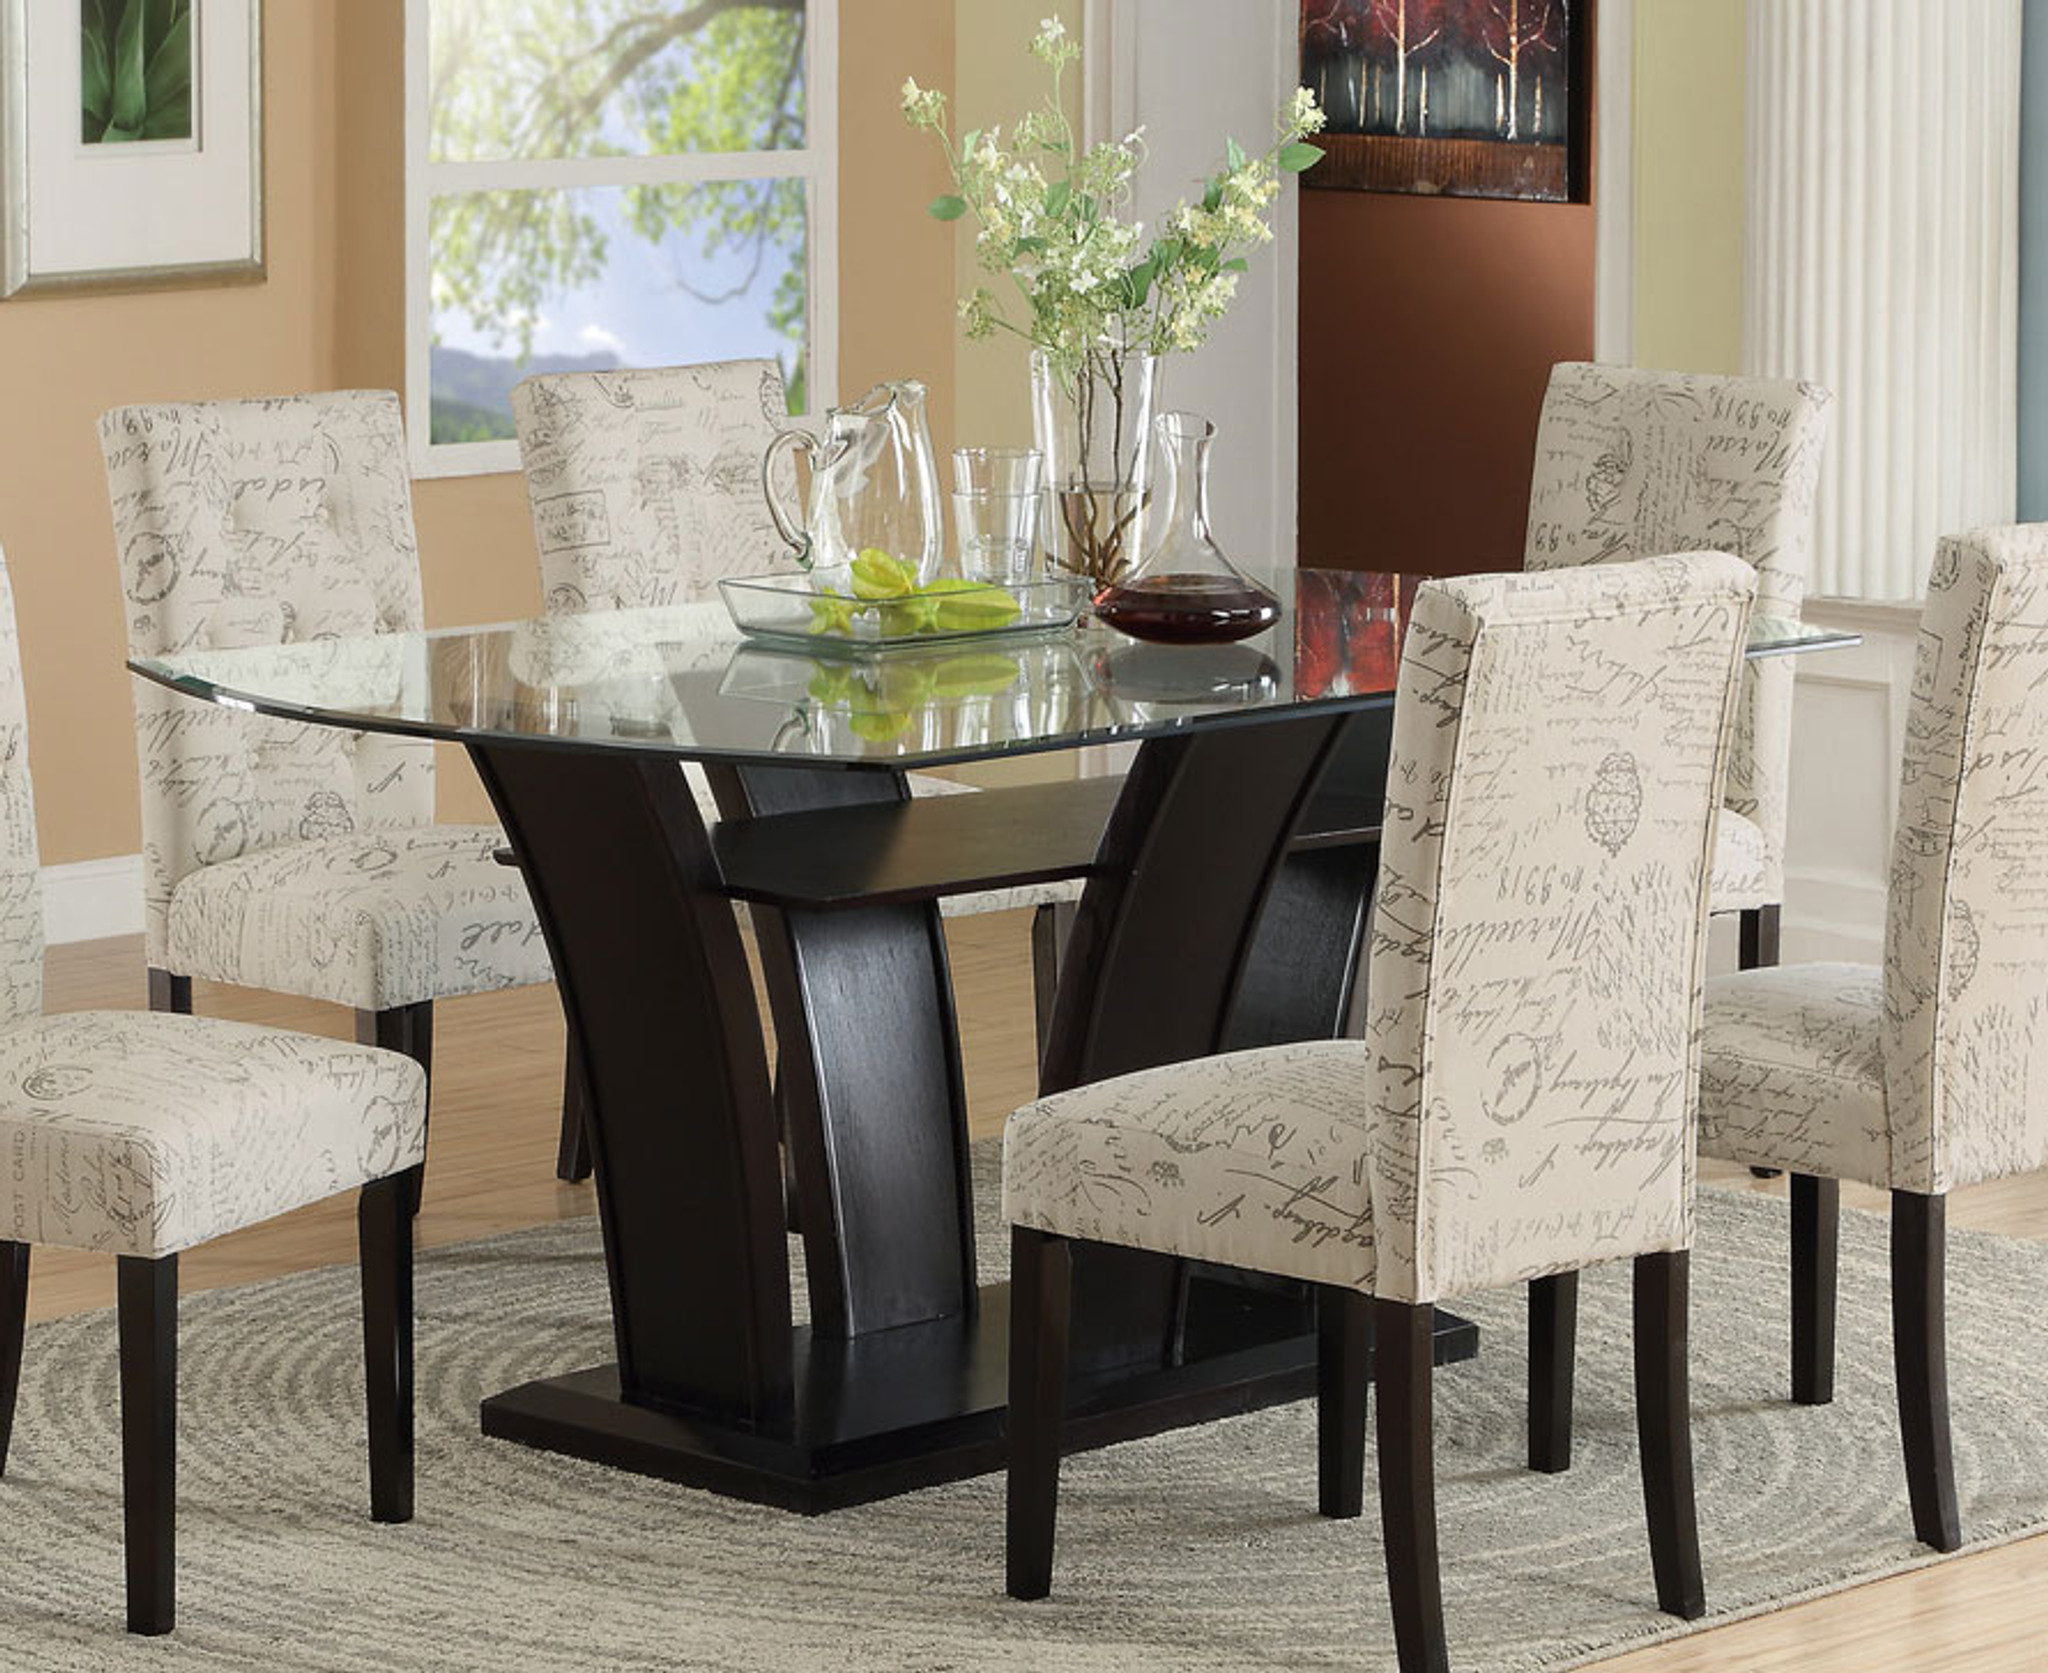 FUTURISTIC STYLE FORMAL DINING TABLE